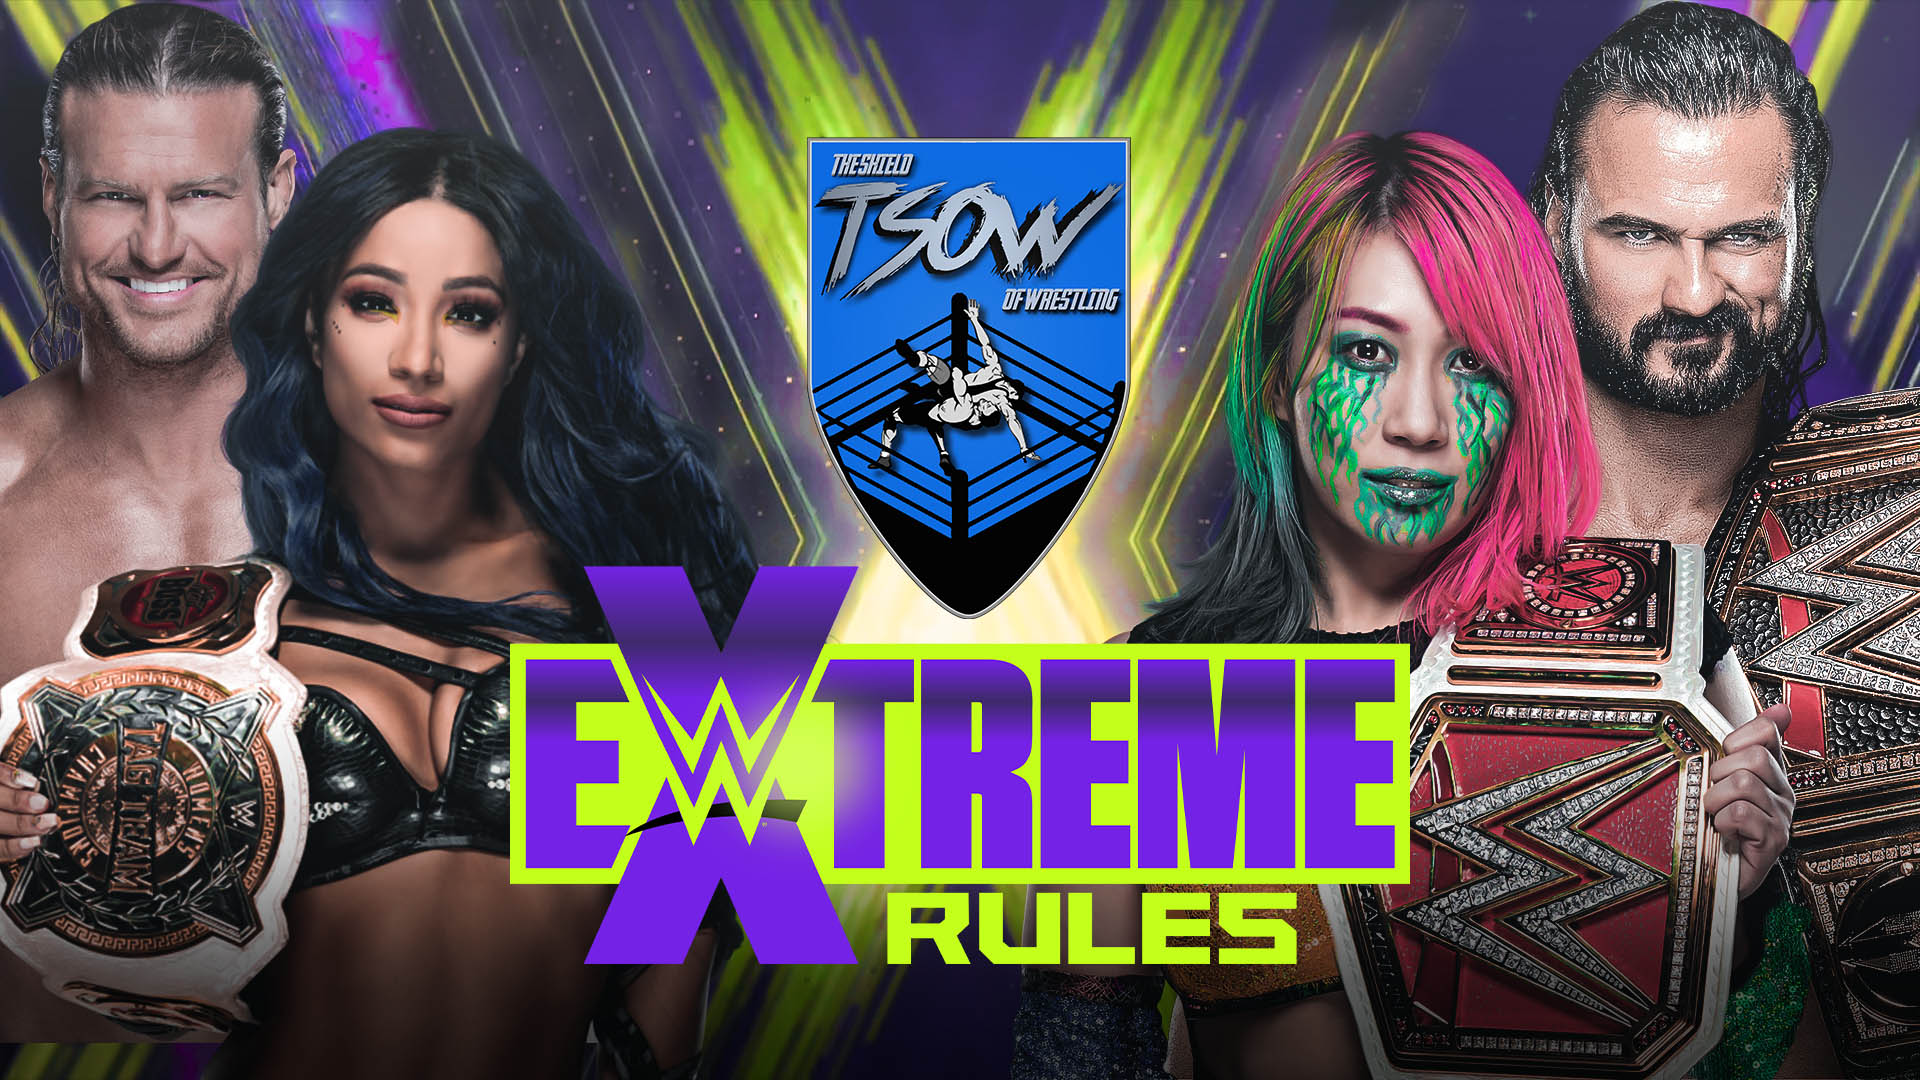 Report Extreme Rules - The Horror Show